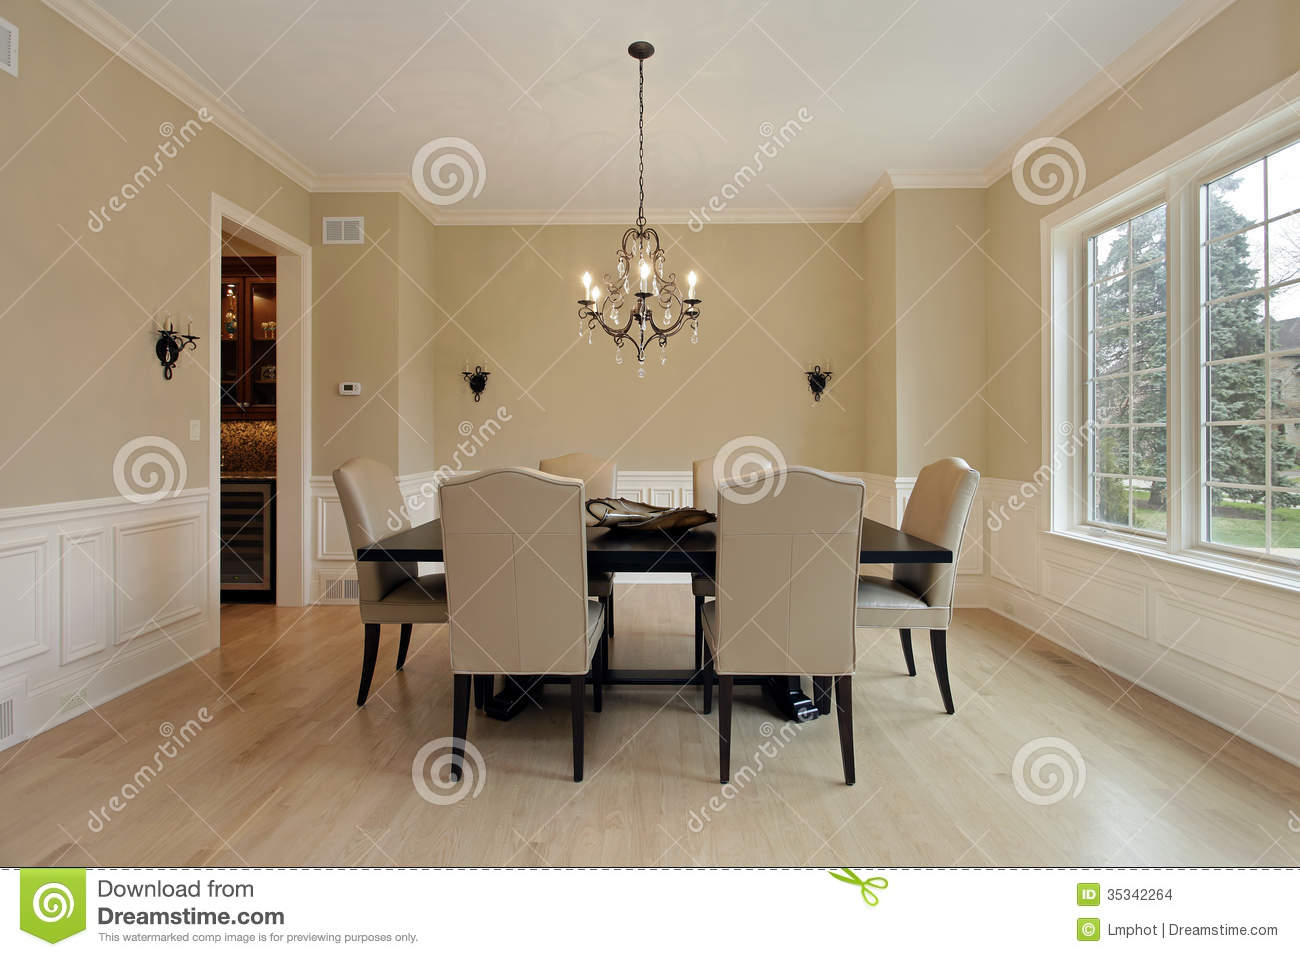 Dining Room With Candle Sconces Stock Images